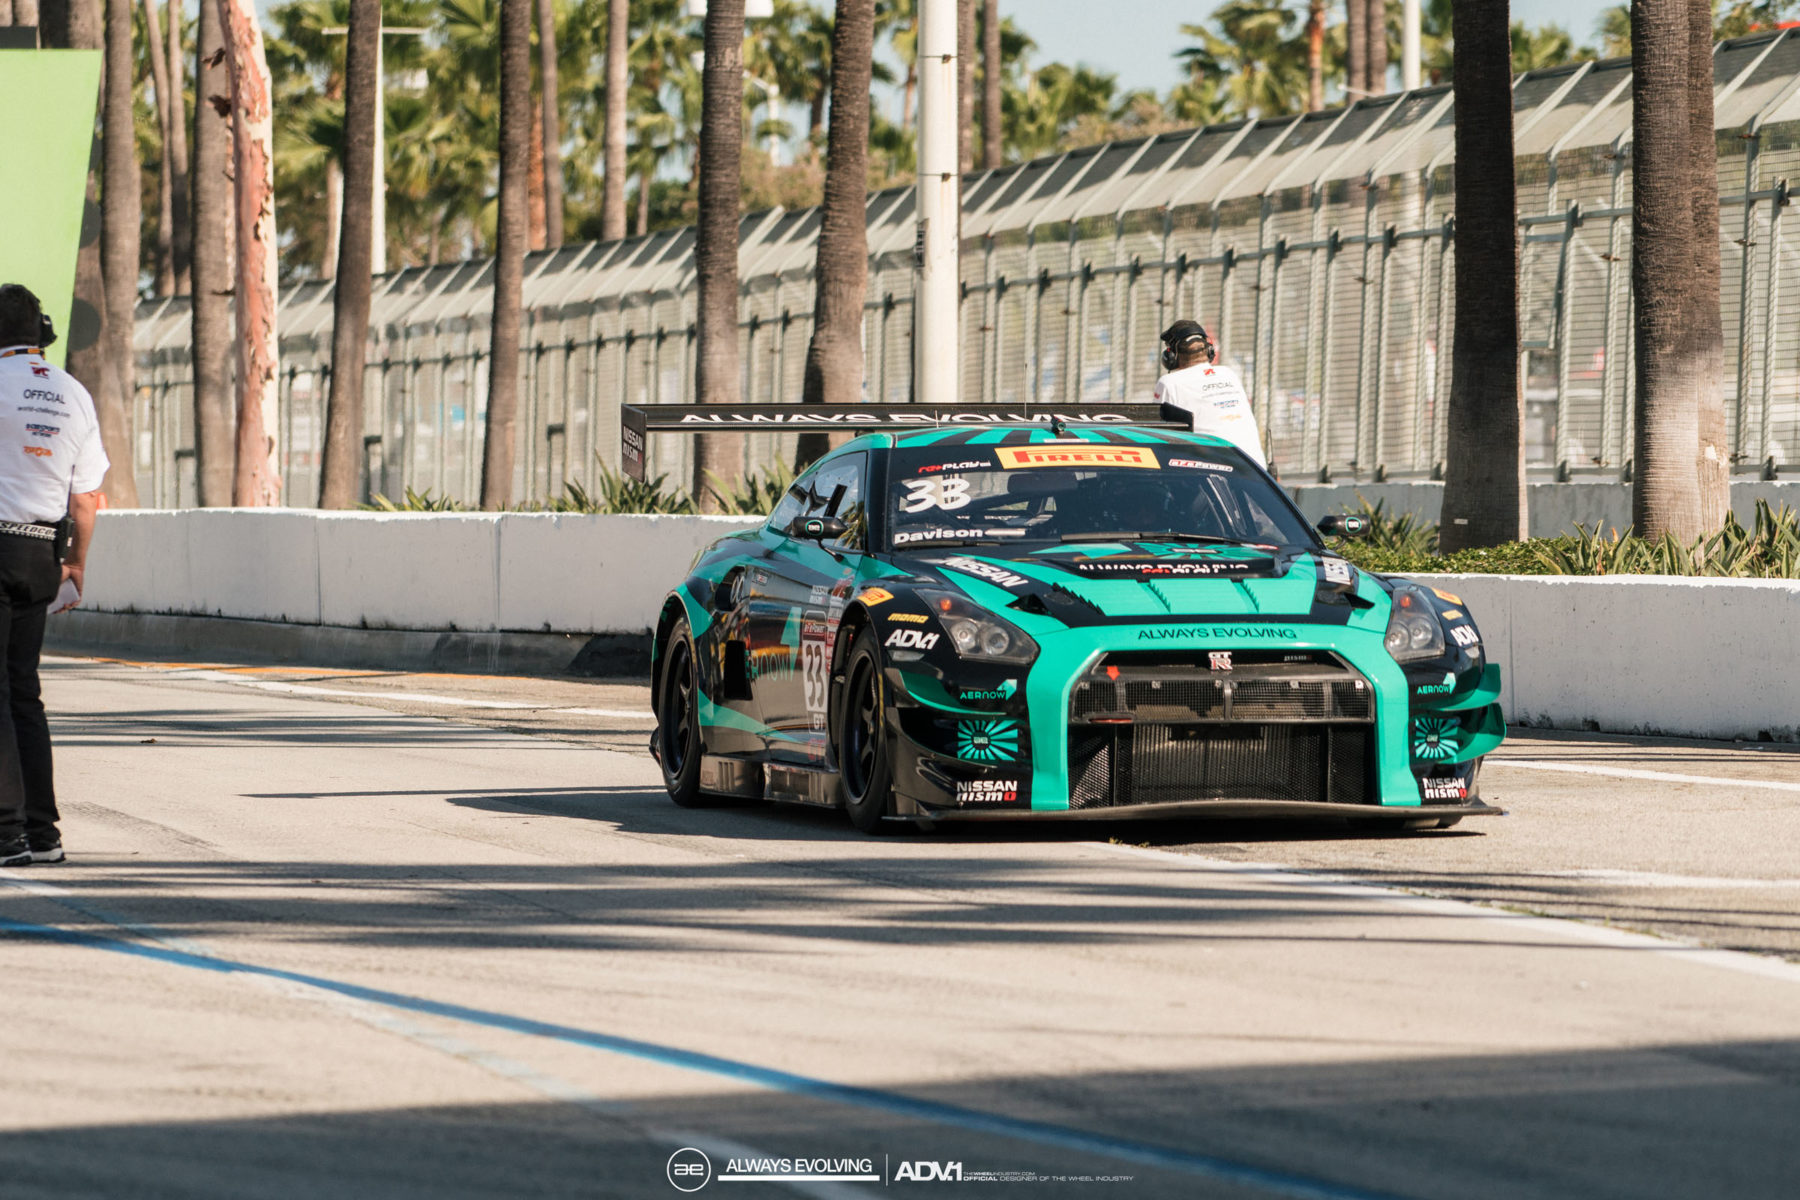 adv1-wheels-forged-nissan-nismo-r35-GT-racecar-always-evolving-ae-racing-adv1-pirelli-world-challenge-C